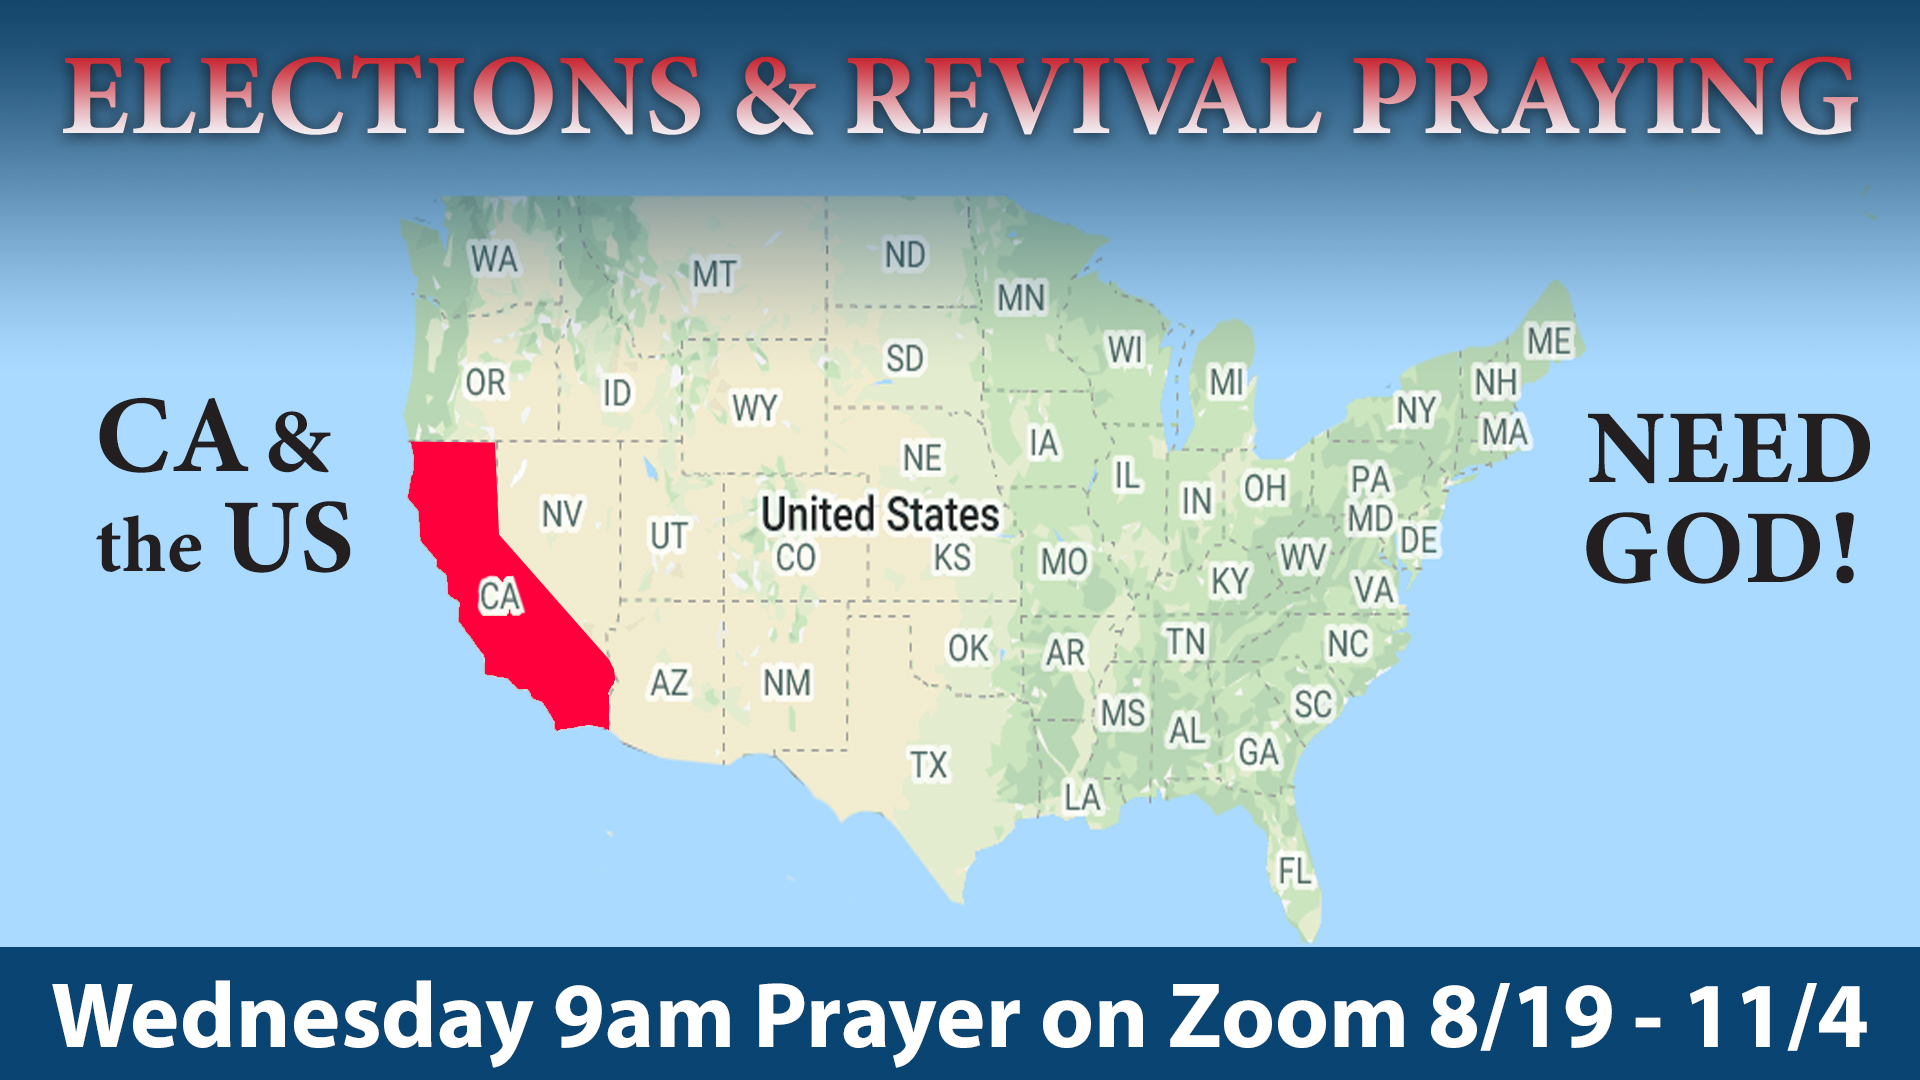 Election & Revival Prayer Meetings